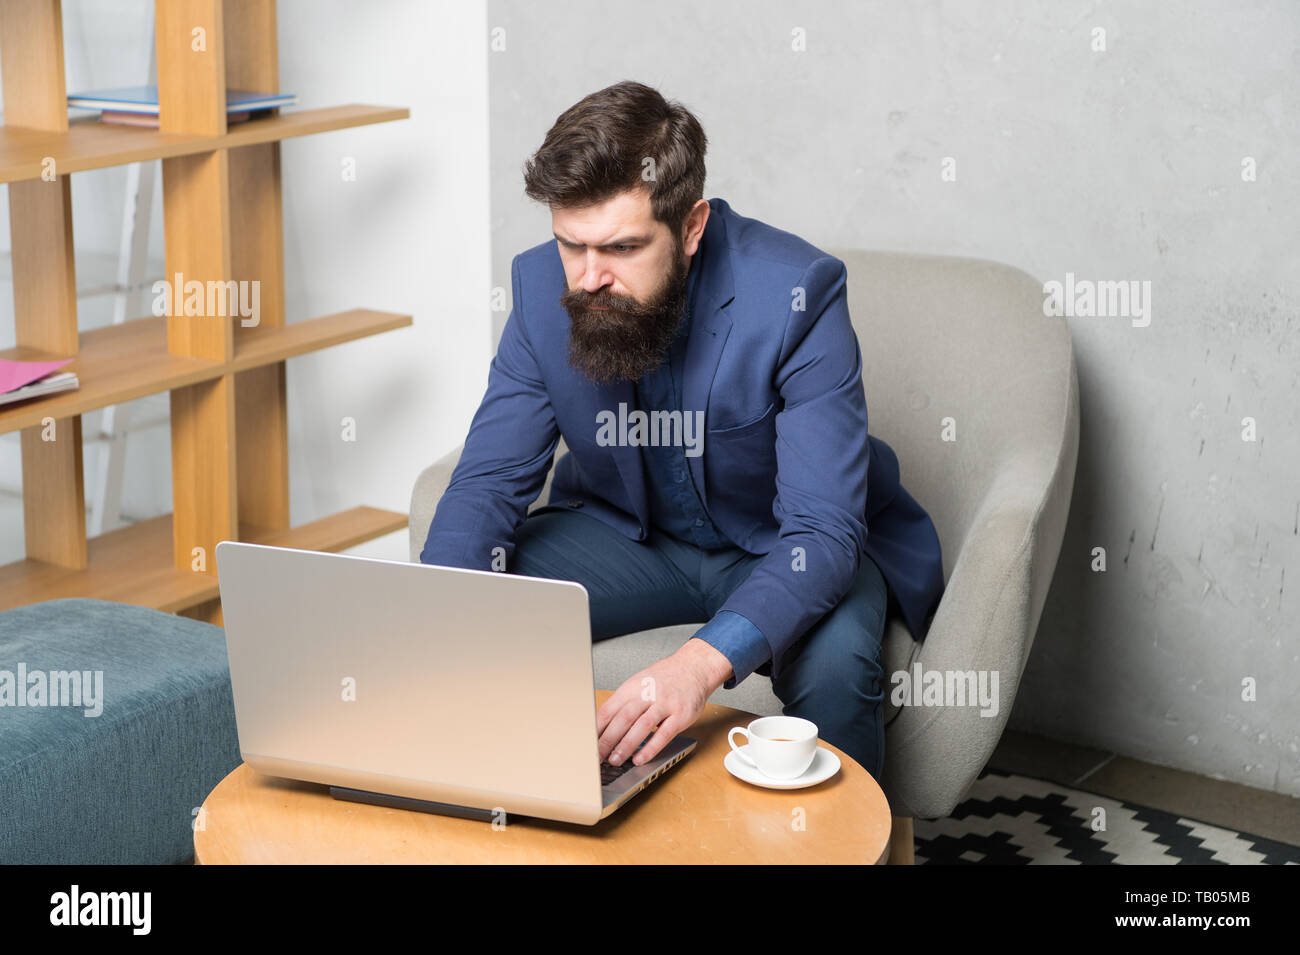 Businessman work laptop. Responding business email. Surfing internet. Project manager. Digital business. Financial consultation. Banker or accountant. Business correspondence. Modern businessman. - Stock Image